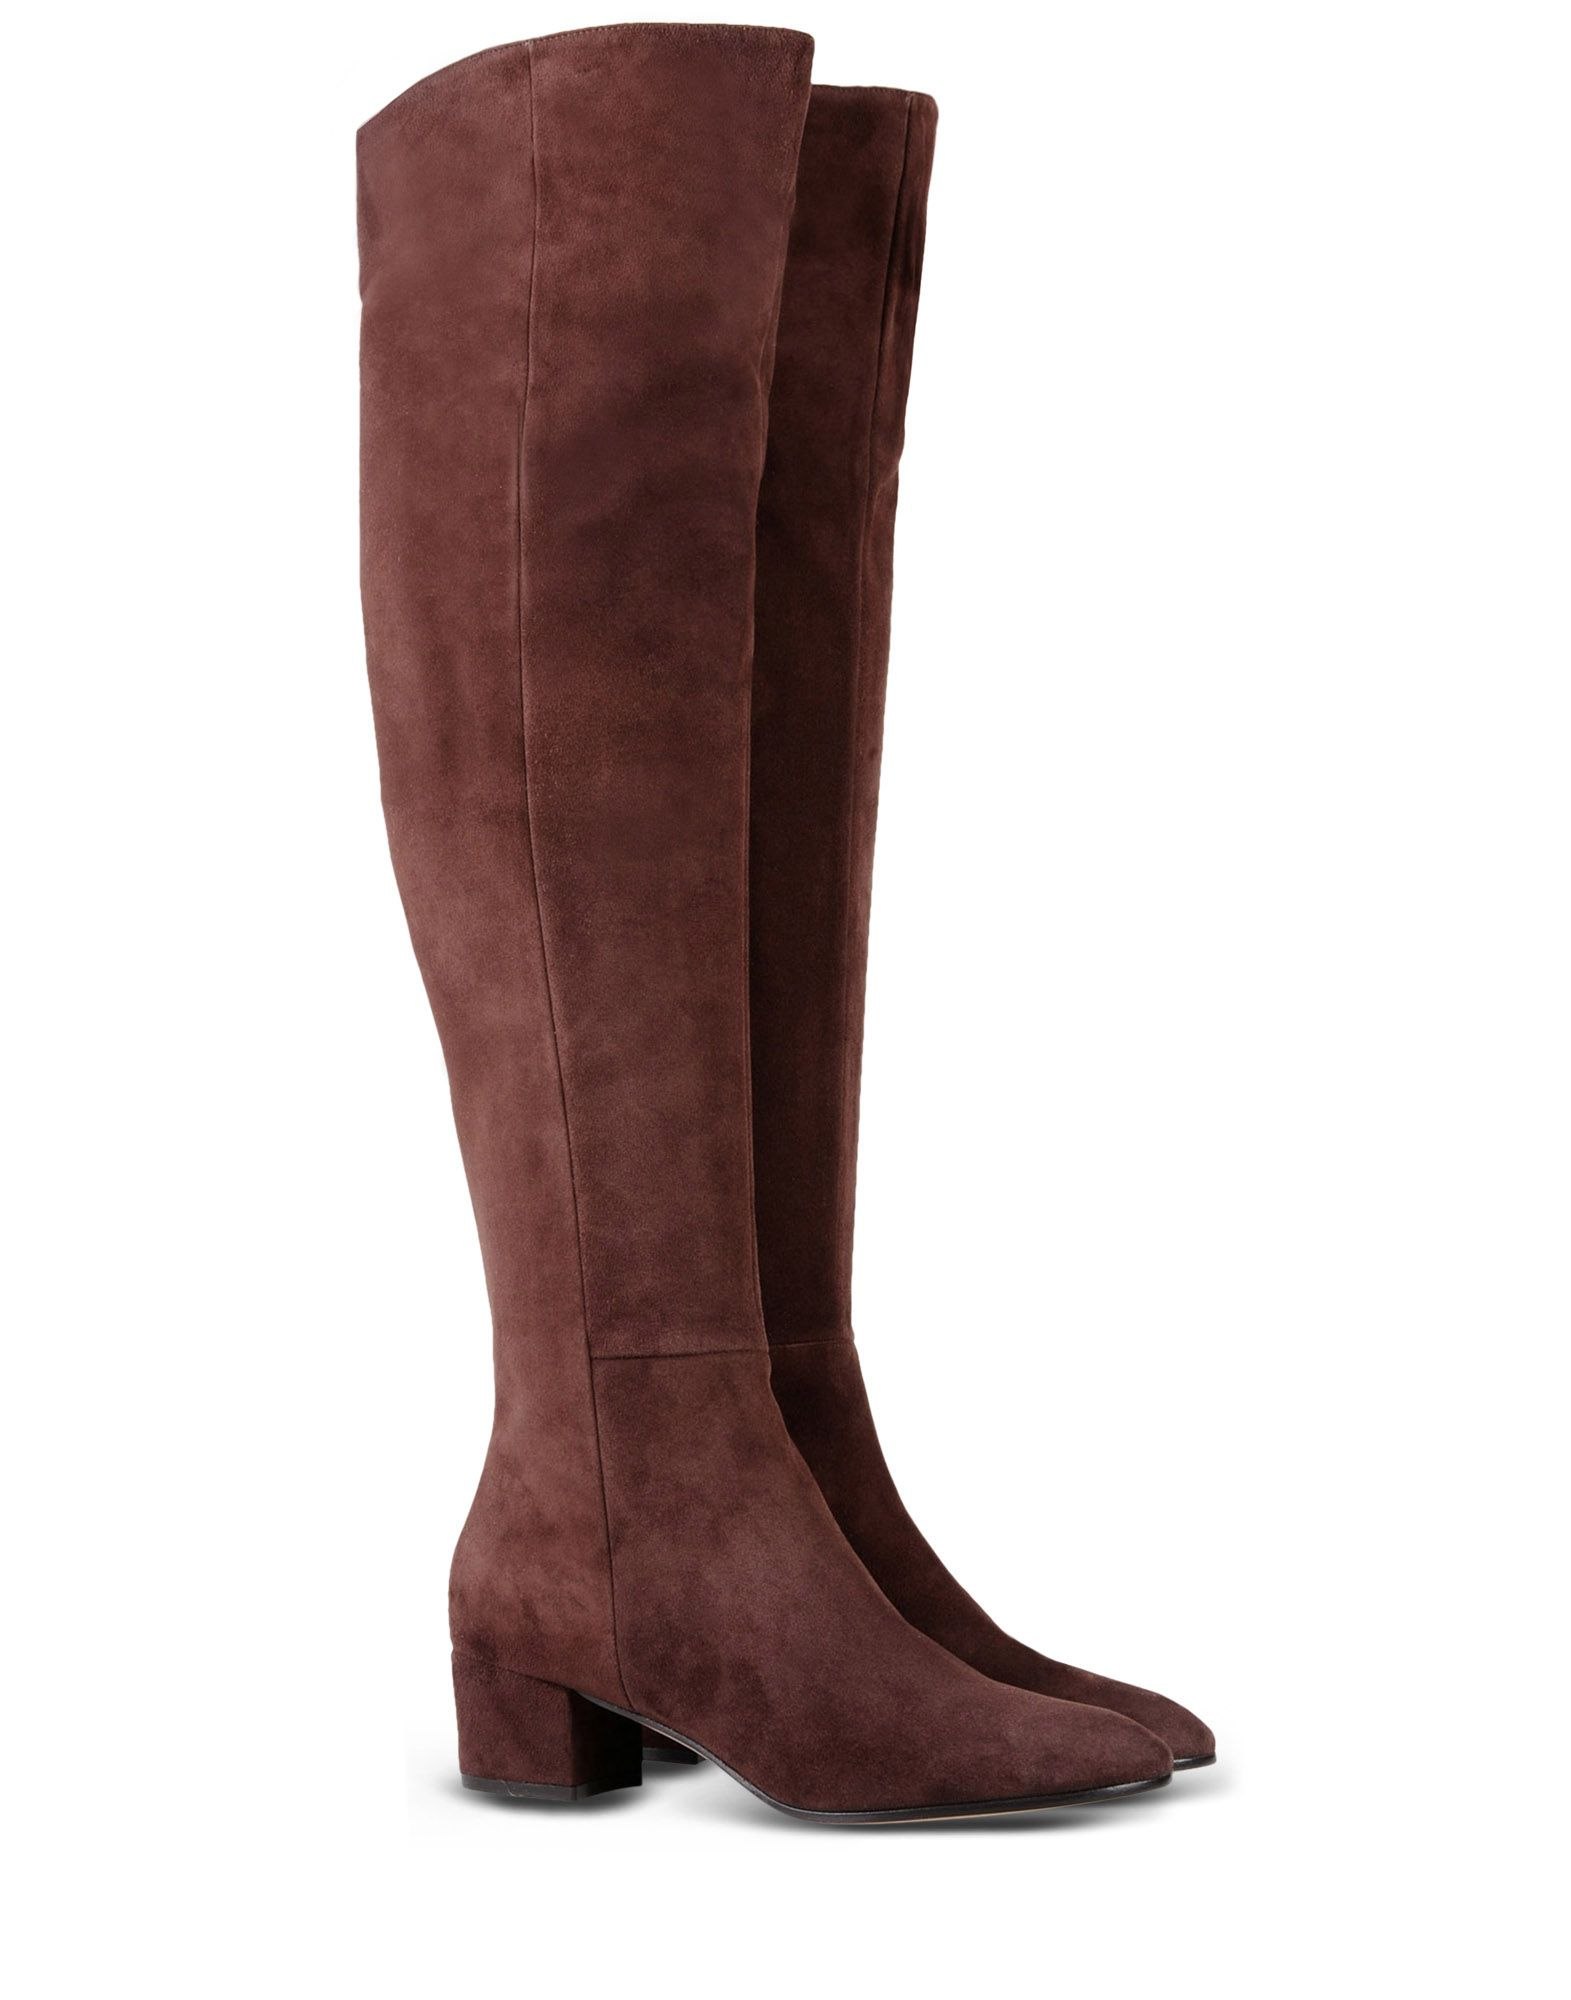 gianvito rossi boots in brown dark brown lyst. Black Bedroom Furniture Sets. Home Design Ideas